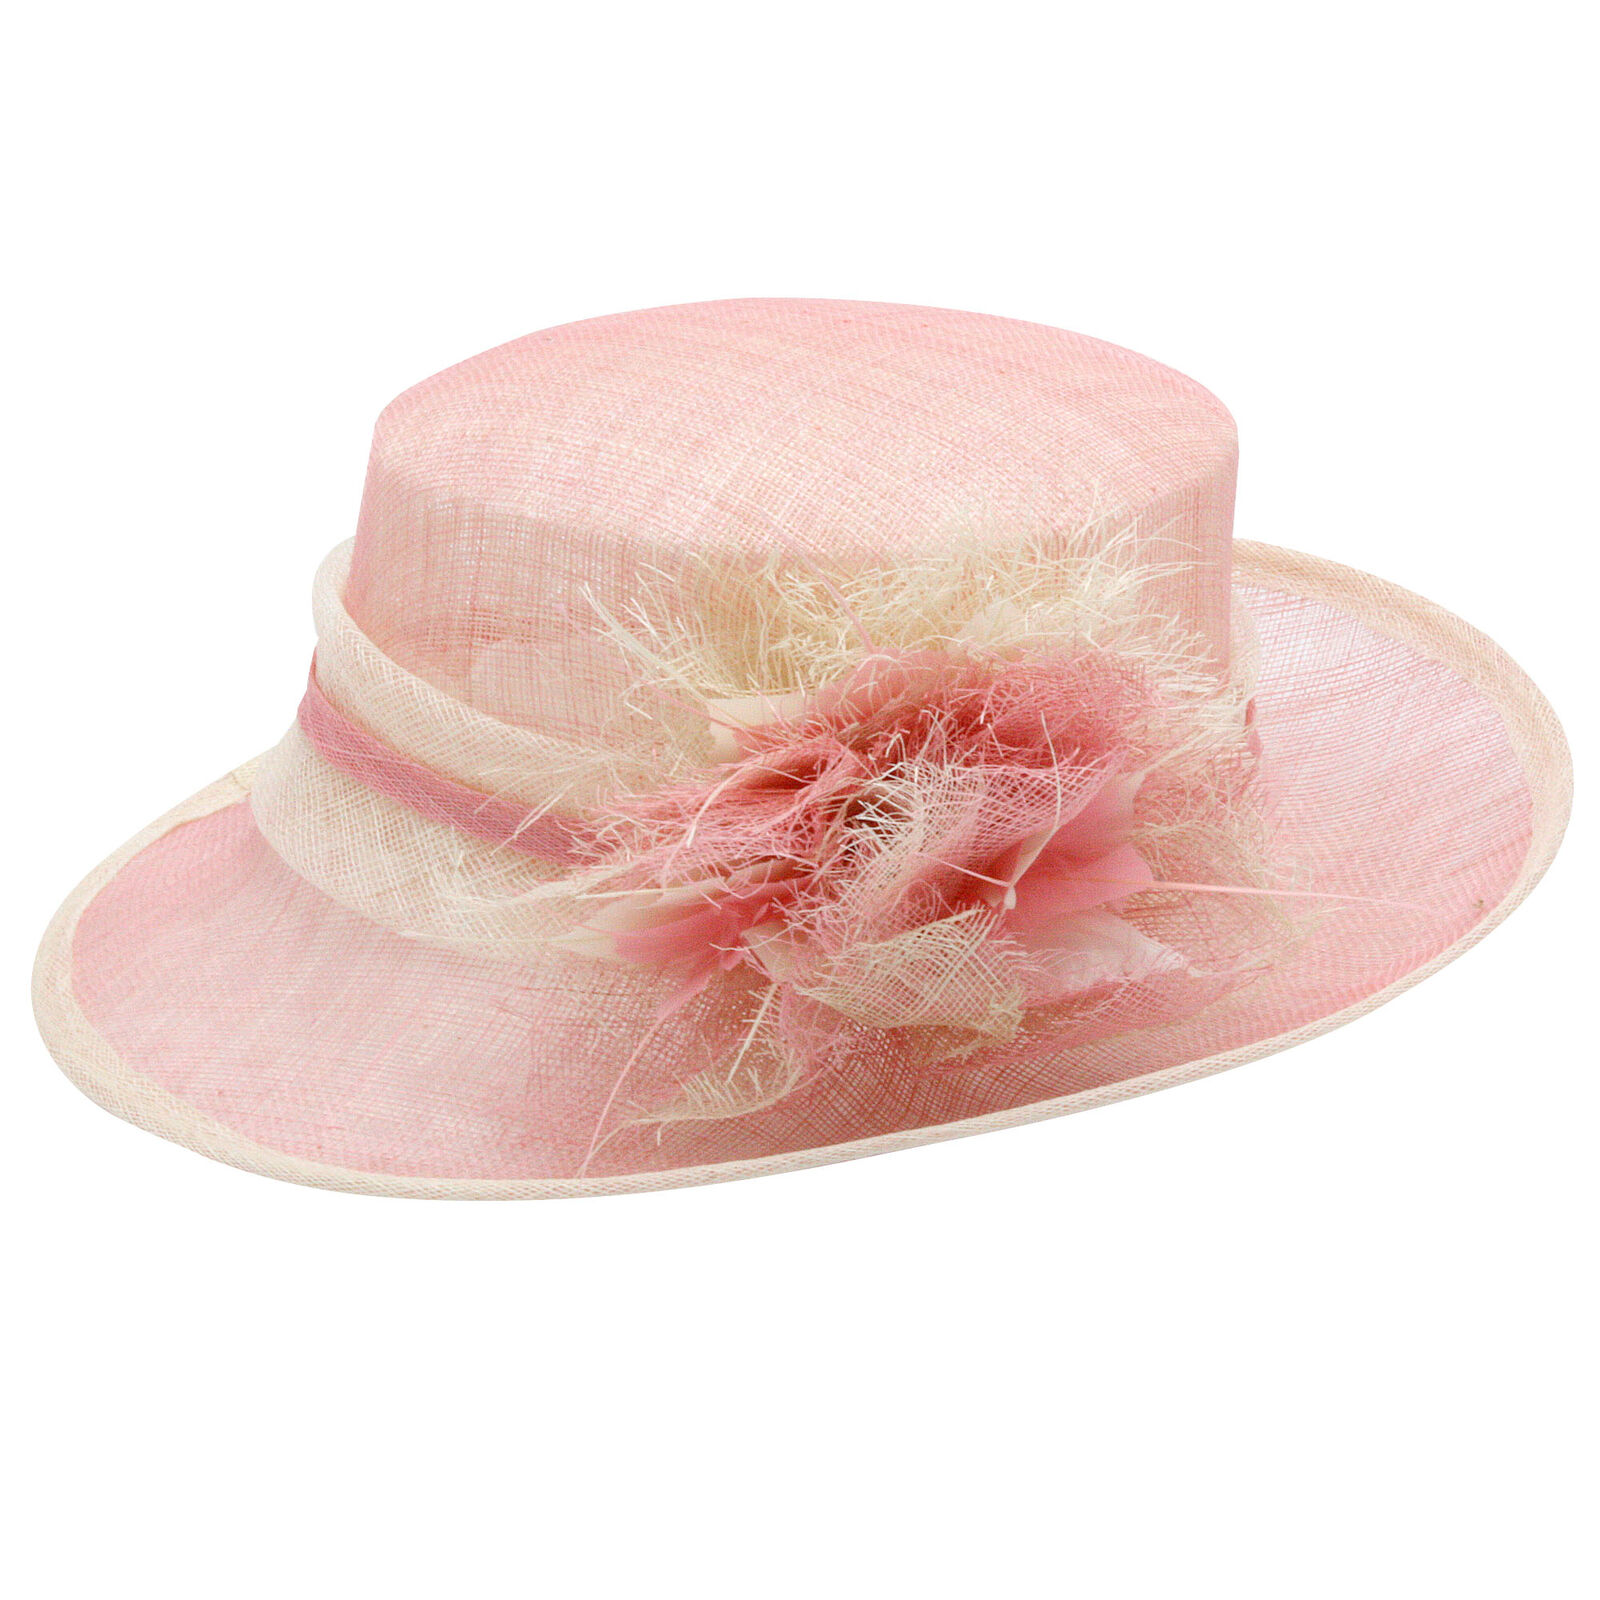 Flower hat wedding curly feather sisal (pink, blue, grey) new